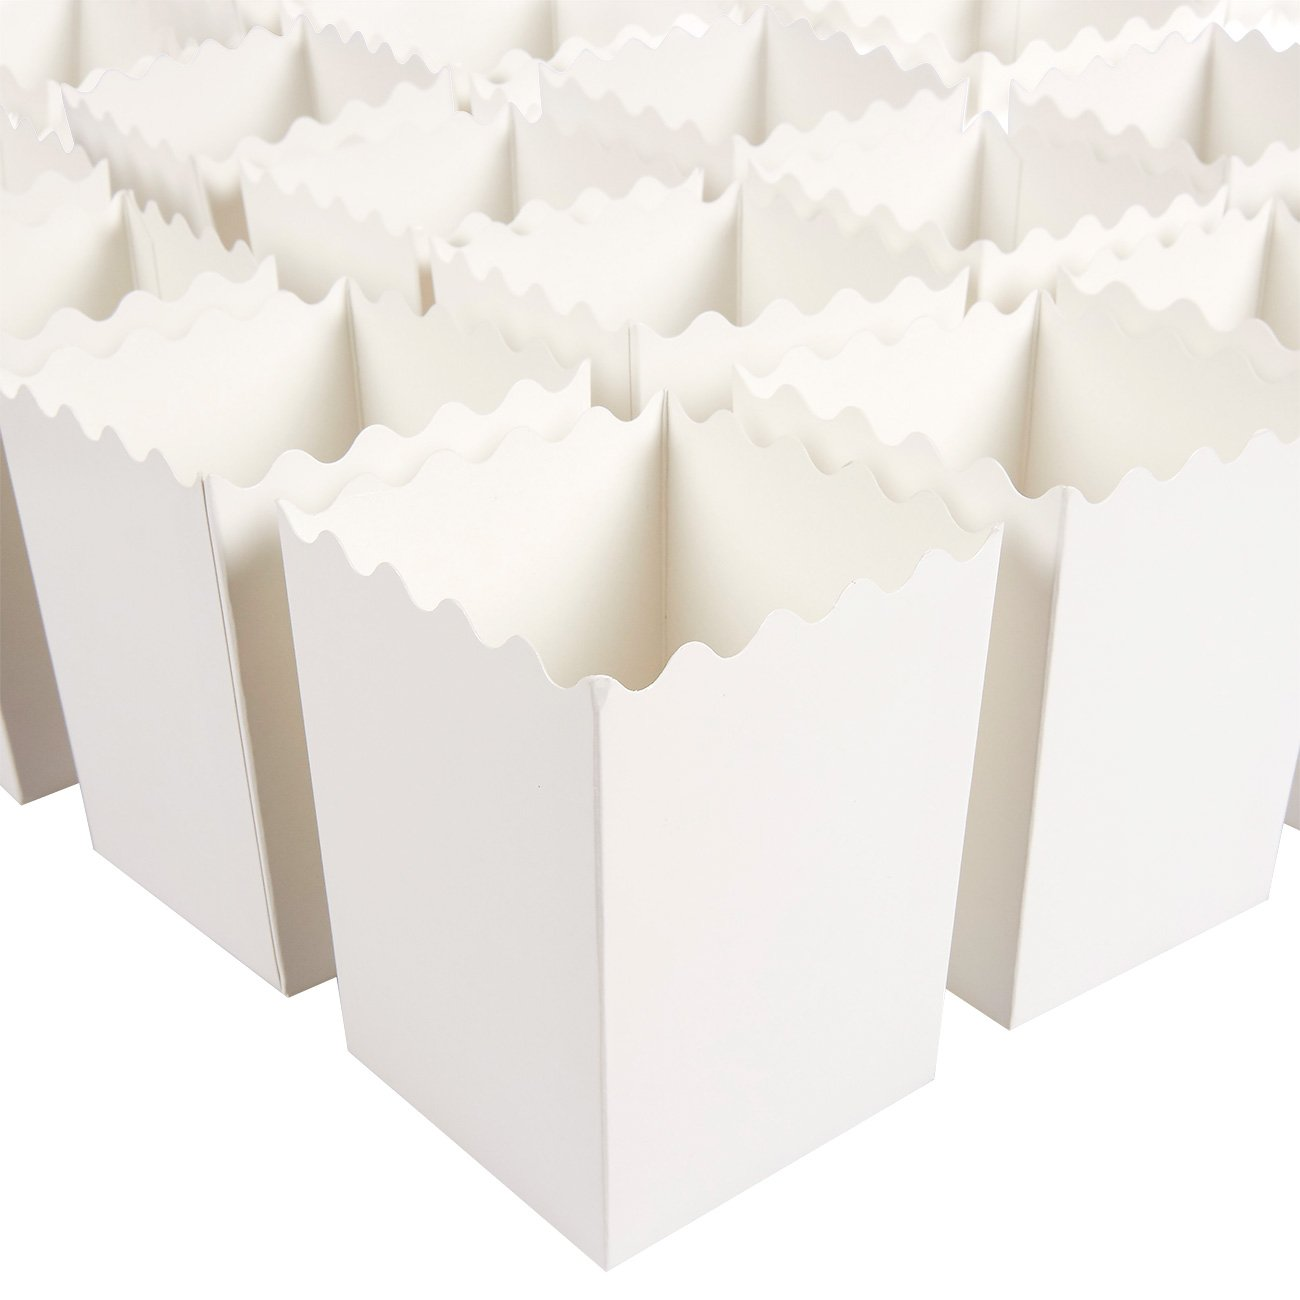 Set of 100 Popcorn Favor Boxes - 16oz Mini Paper Popcorn Containers, Popcorn Party Supplies for Movie Nights, Carnival Parties, Baby Showers and Bridal Showers White - 3 x 4 x 3 Inches by Blue Panda